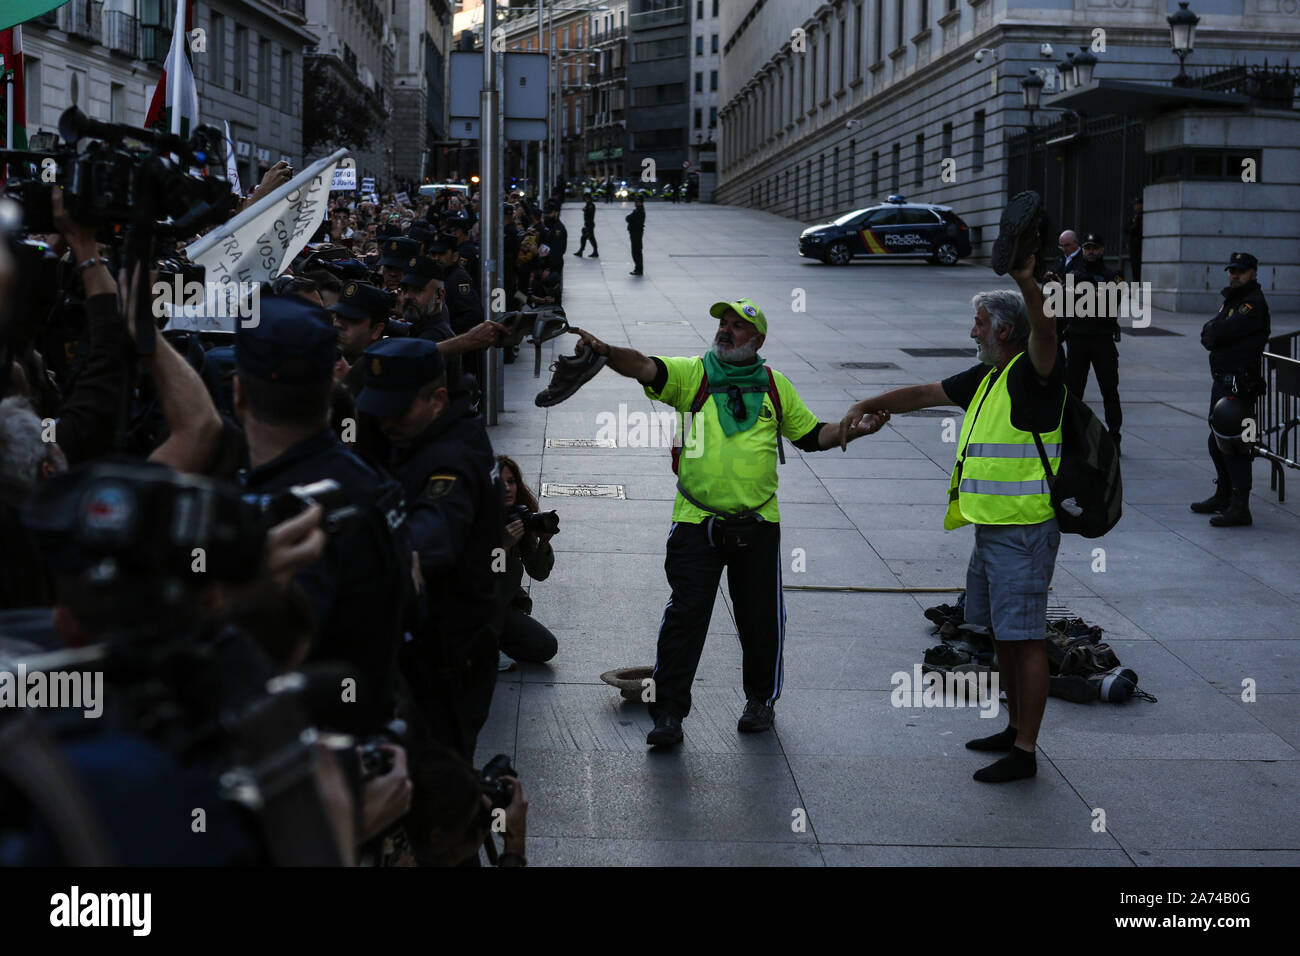 Madrid, Spain. 15th Oct, 2019. Protesters leaving their shoes in front of the Spanish Parliament after walking hundreds of kilometres during the demonstration.Thousands of people gathered at Puerta del Sol to protest against precariousness and low pensions for elder people. Marches from Bilbao (northern Spain) and Rota (southern Spain) met at the country's capital to protest in front of Spanish Parliament. Credit: Guillermo Santos/SOPA Images/ZUMA Wire/Alamy Live News Stock Photo